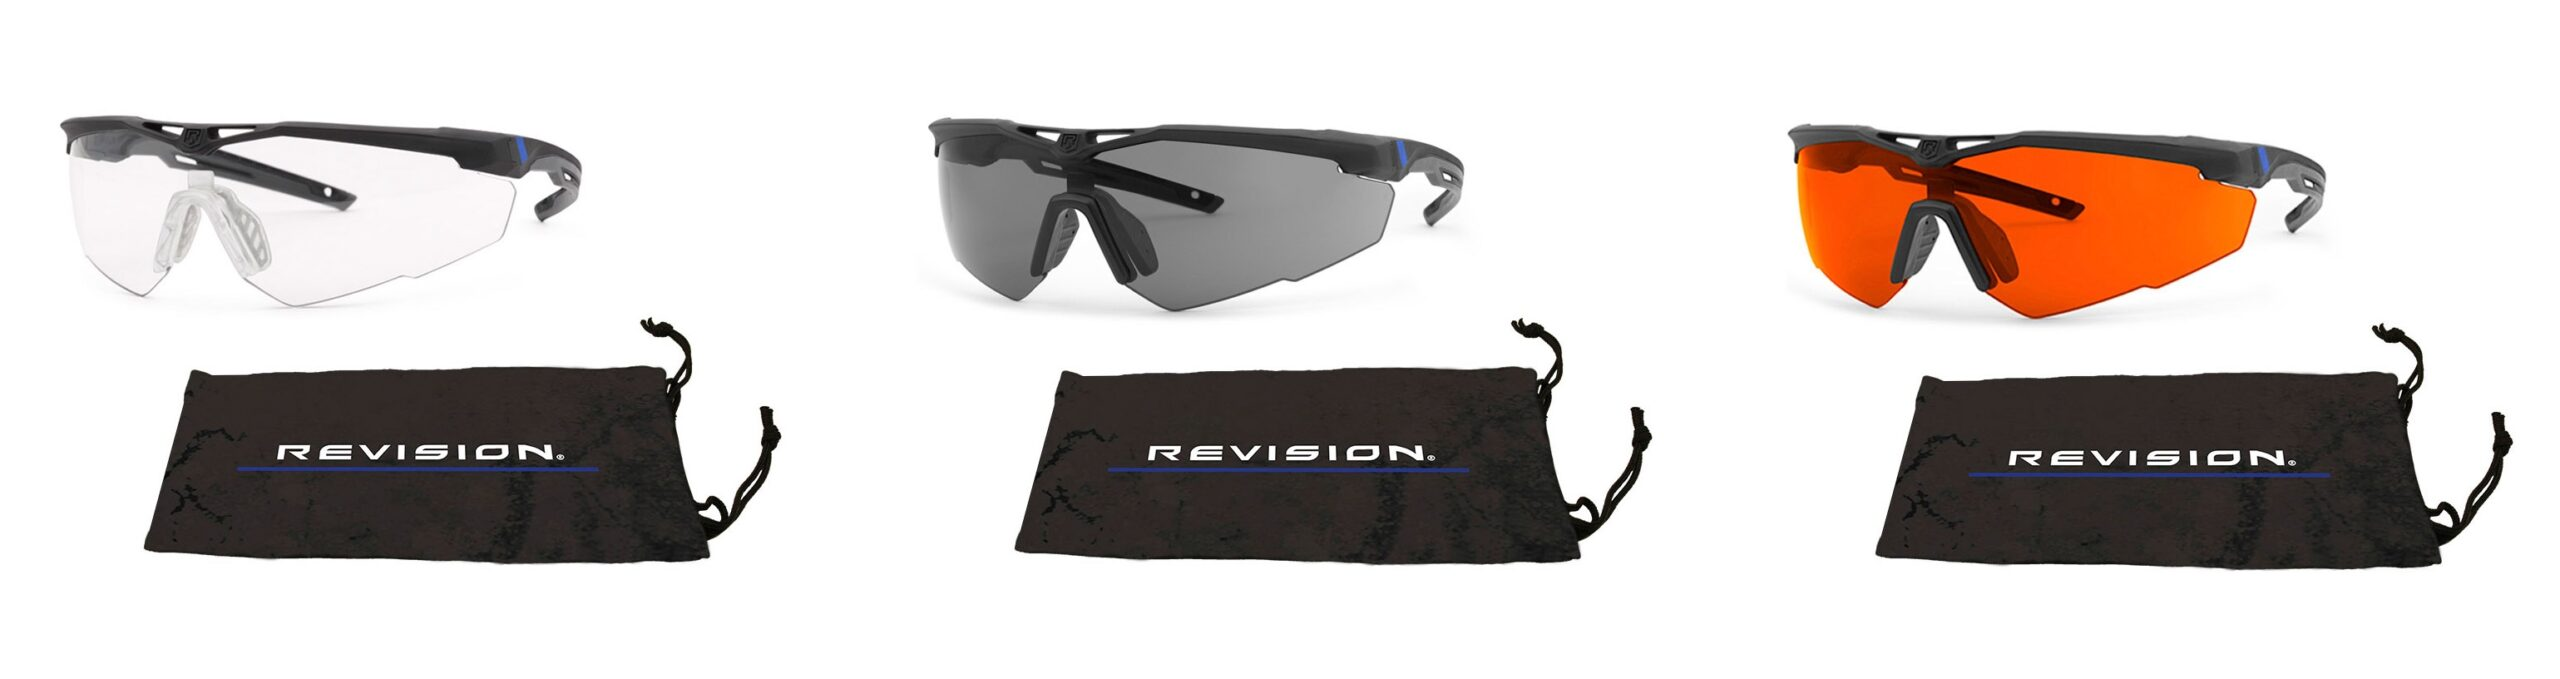 Revision's StingerHawk® Law Enforcement Edition kits offer blue-line branded frame, adjustable nosepiece, choice of clear, smoke or FT-2 laser protective lens and branded microfiber pouch. All products exceed military-spec ballistic standards, offer world-class OcuMax® anti-fog performance, and optional integrated prescription correction solution.